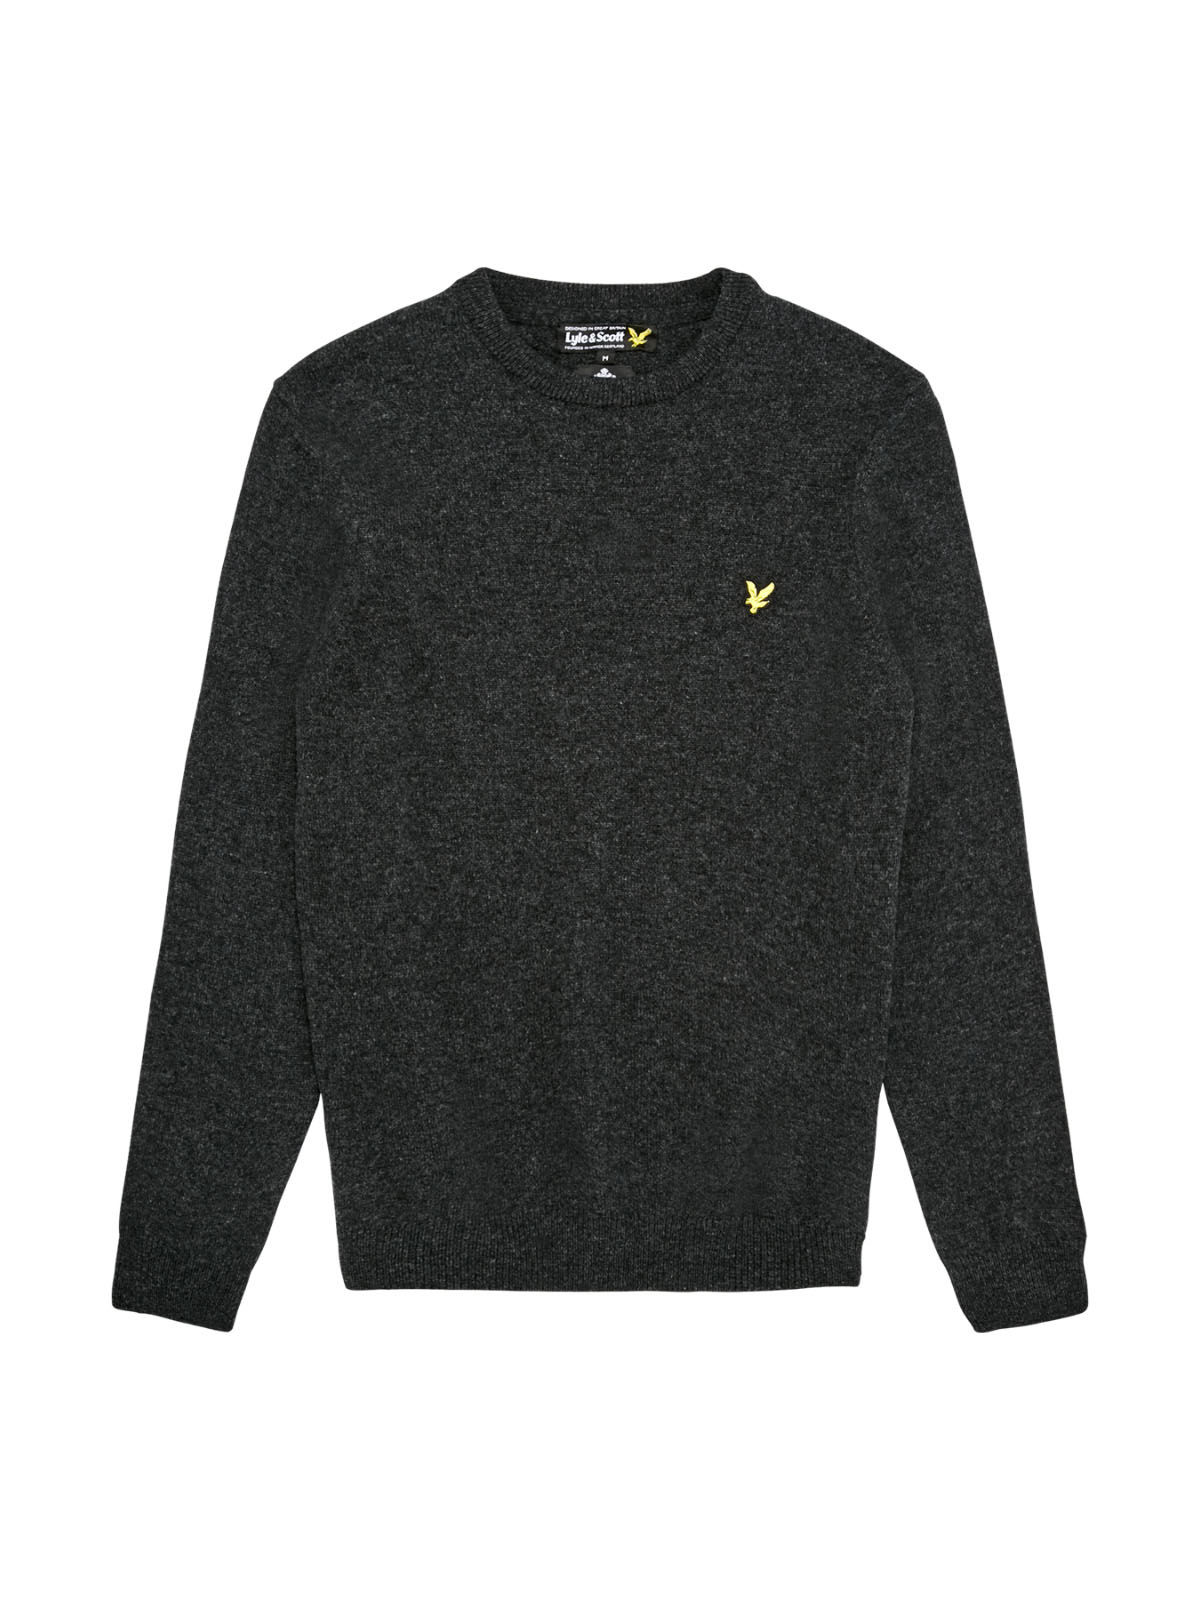 Lyle and Scott Charcoal Marl Crew Neck Lambswool Jumper